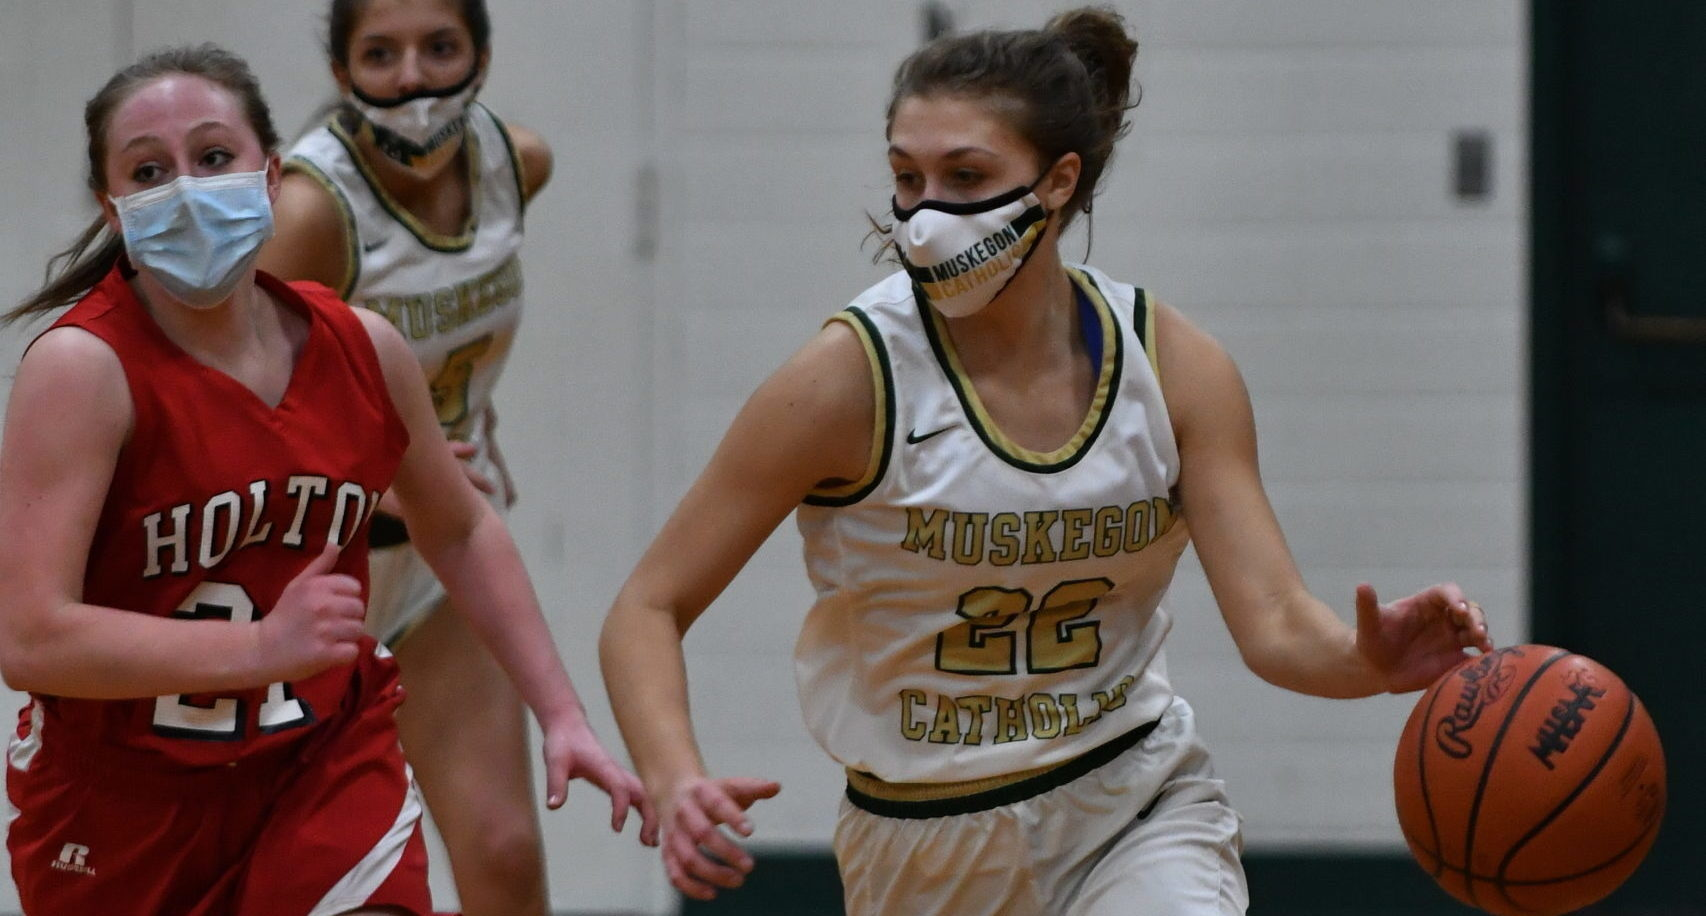 Monday girls hoops roundup: Muskegon Catholic downs Holton in non-league contest